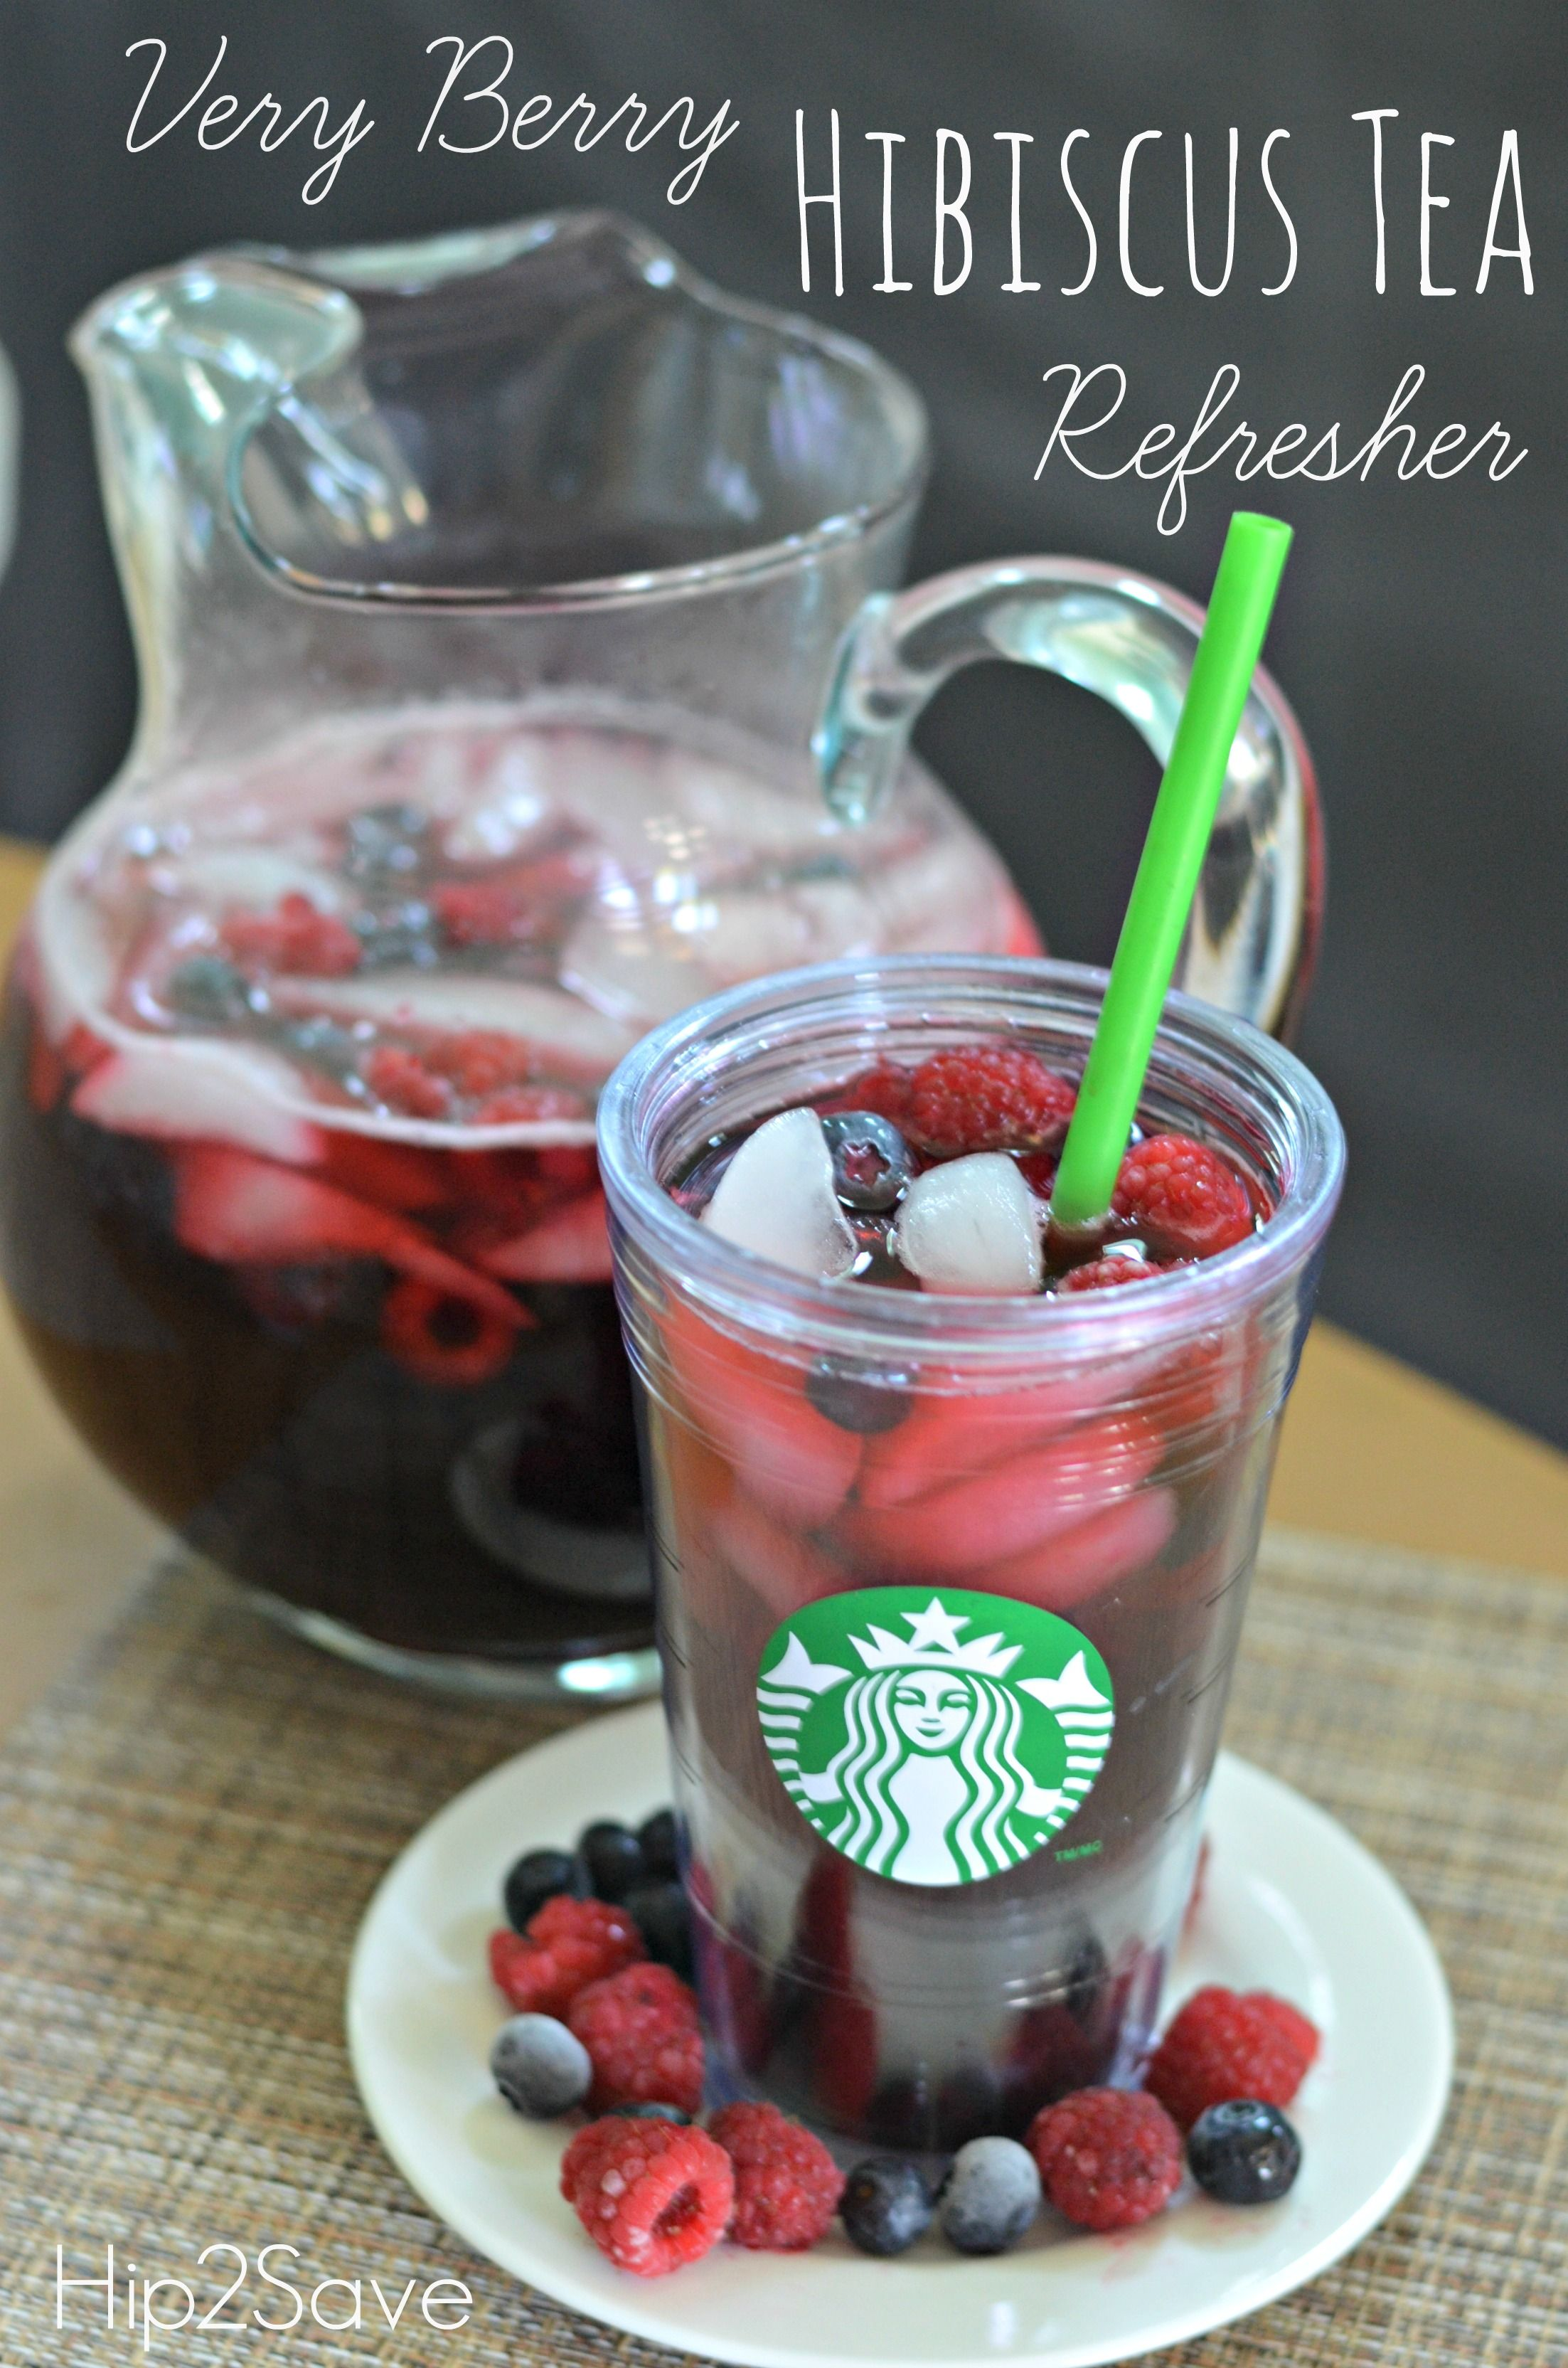 Very Berry Hibiscus Tea Refresher Recipe Food Starbucks